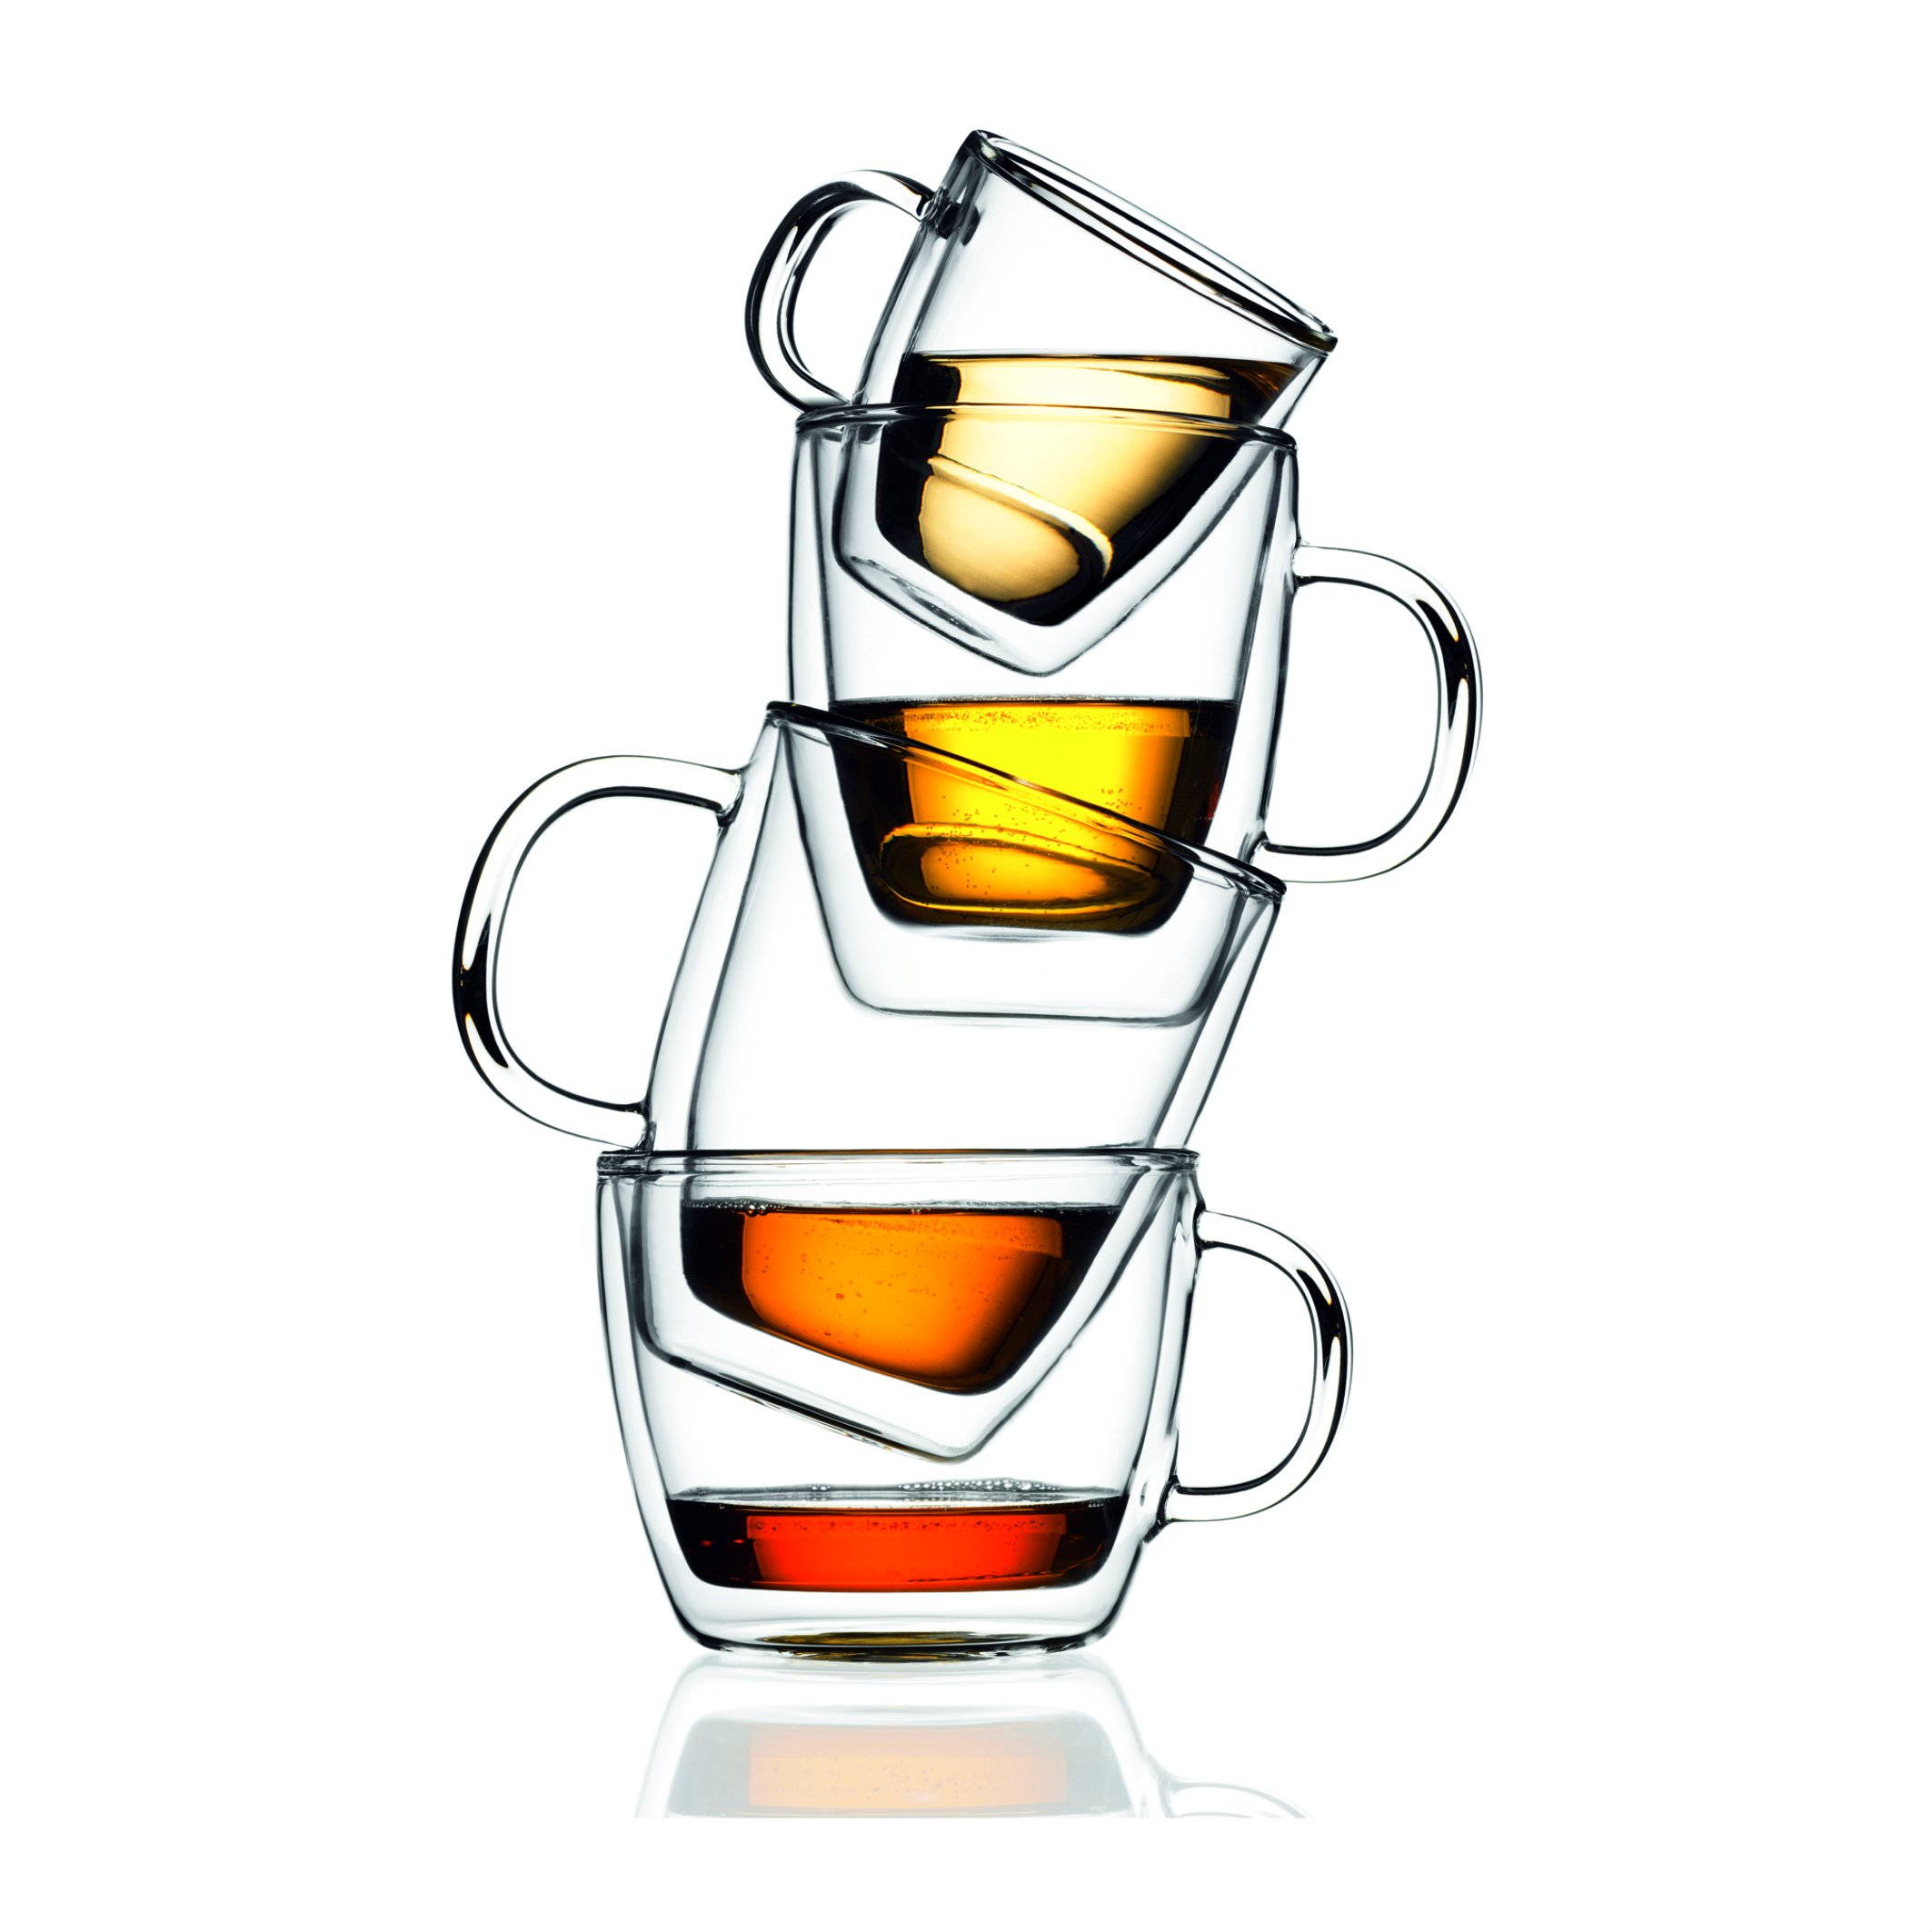 Bodum Bistro Coffee Mugs, Double-Wall Insulated Glass, Clear, 10 Ounces Each (Set of 2) by Bodum (Image #2)